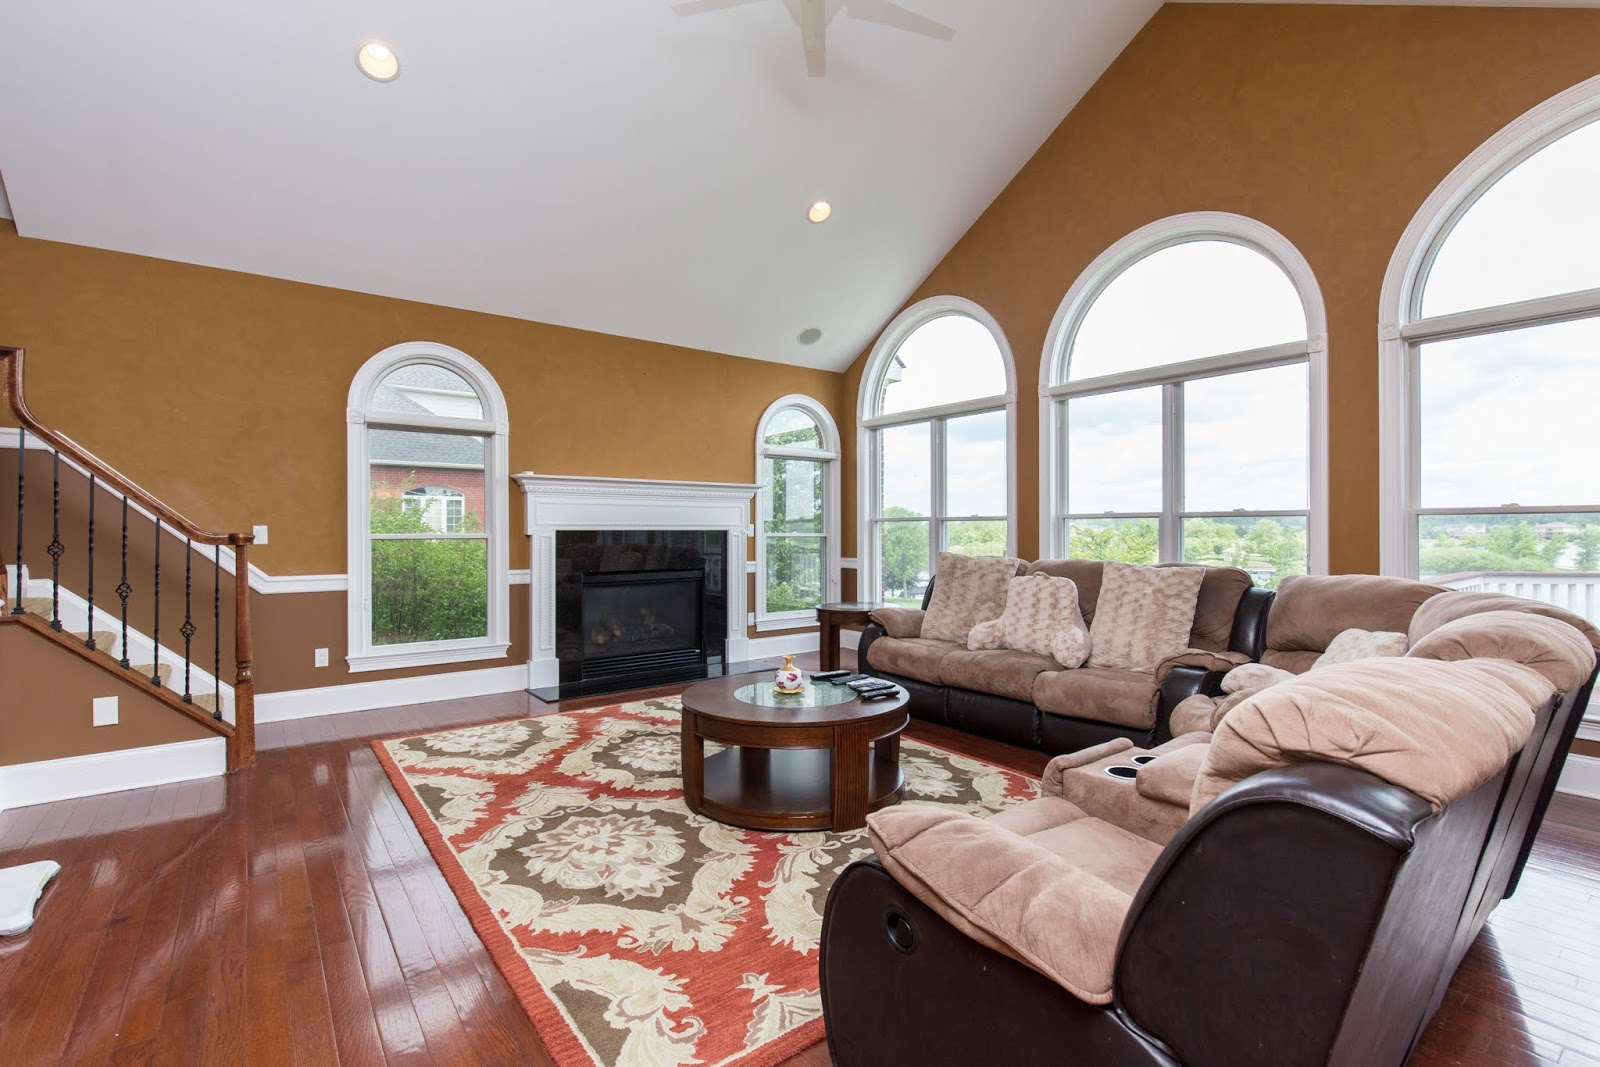 Interior living room real estate photographer Northville, Canton, Novi, Farmington Hills, Plymouth